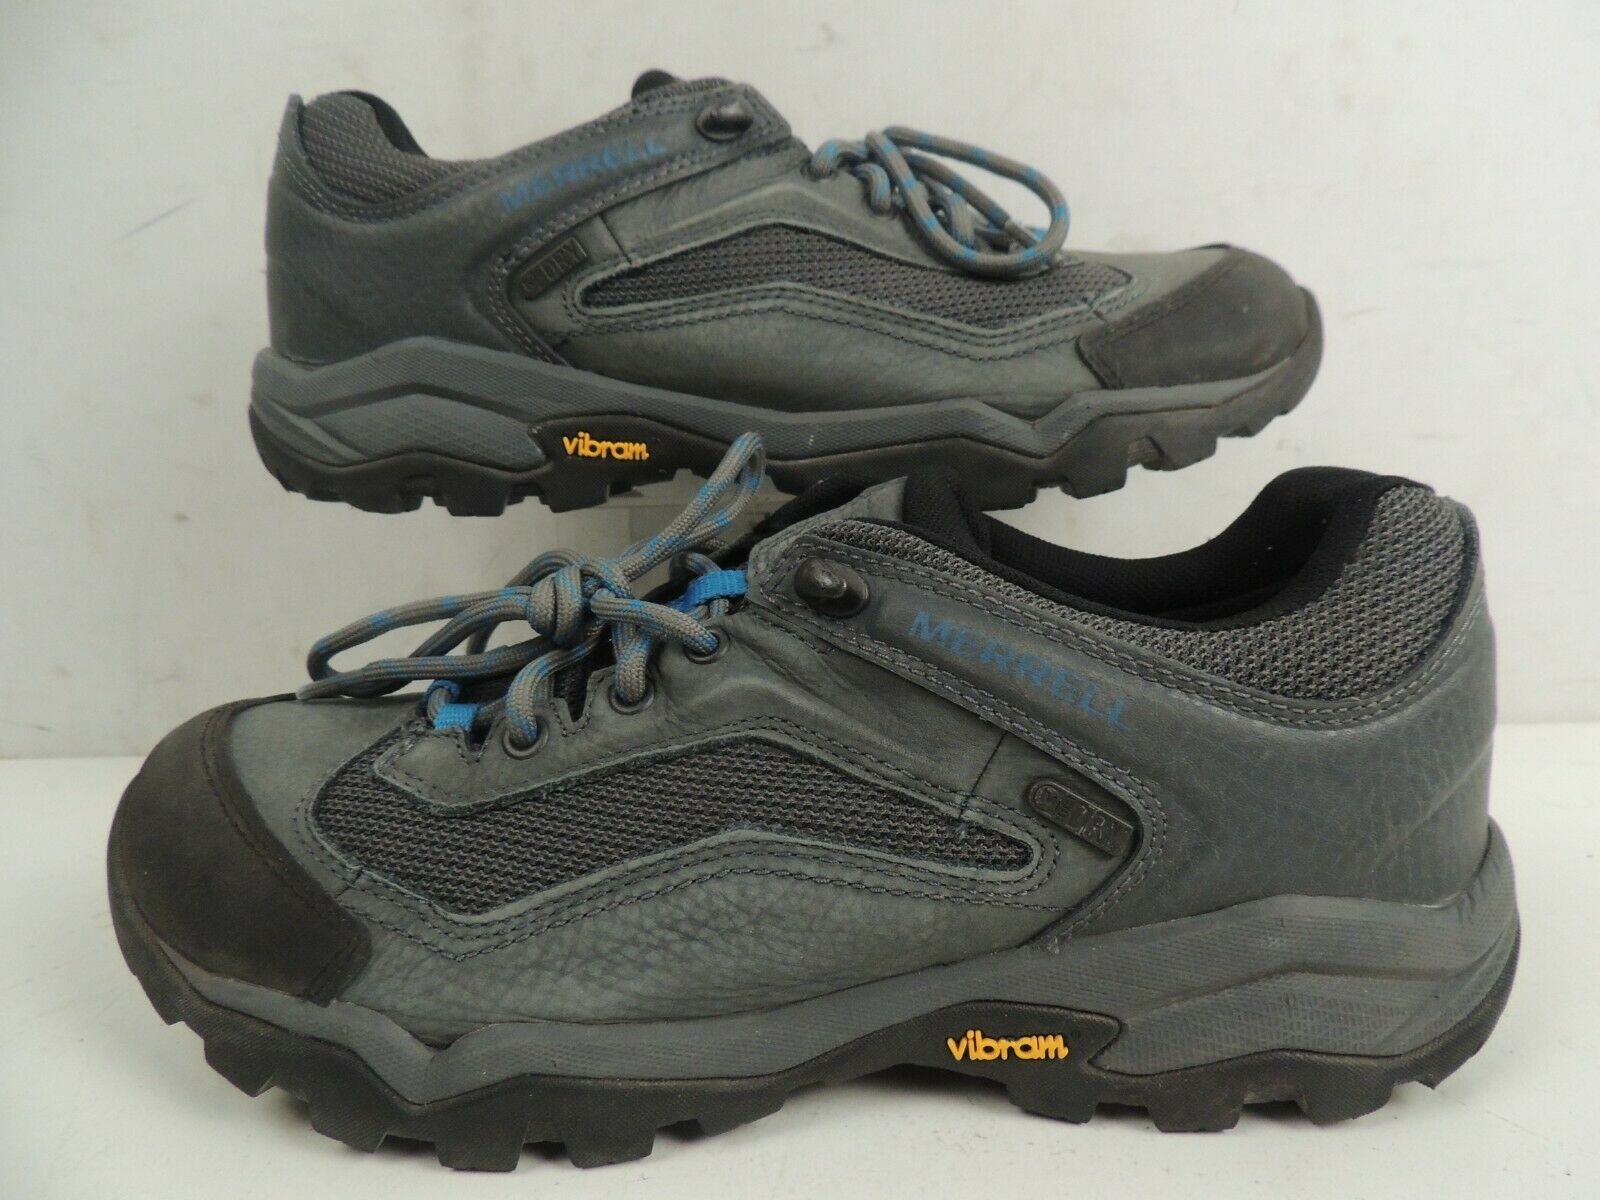 Merrell J03071 Turbulence Everbound Vent Waterproof Hiking Shoes Men's Size 8.5